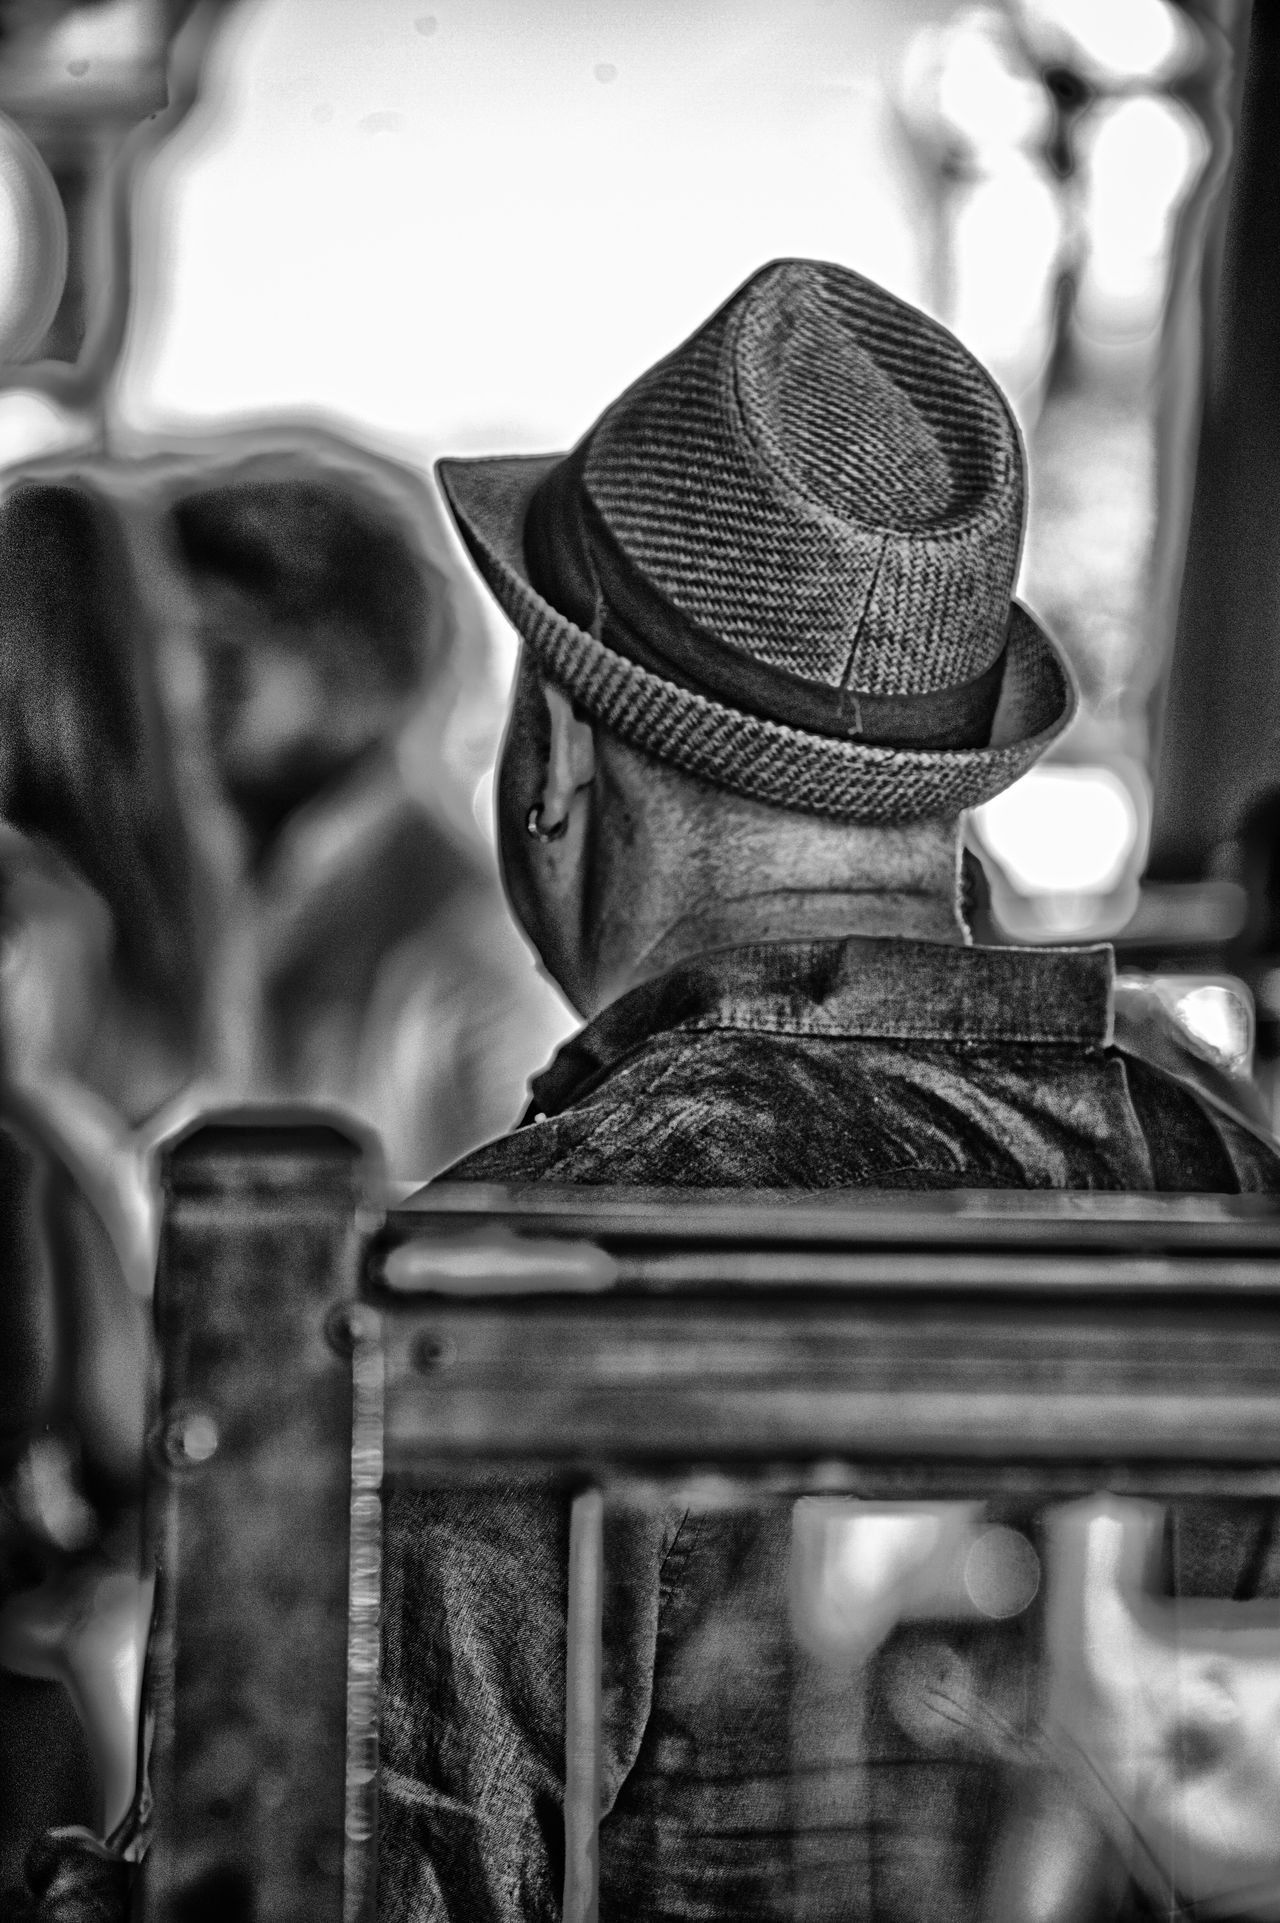 Hat Close-up Outdoors Day Melbourne Taking Photos Victoria Quick Shot Real People Blackandwhite Man No Face Black And White HDR Real People, Real Lives